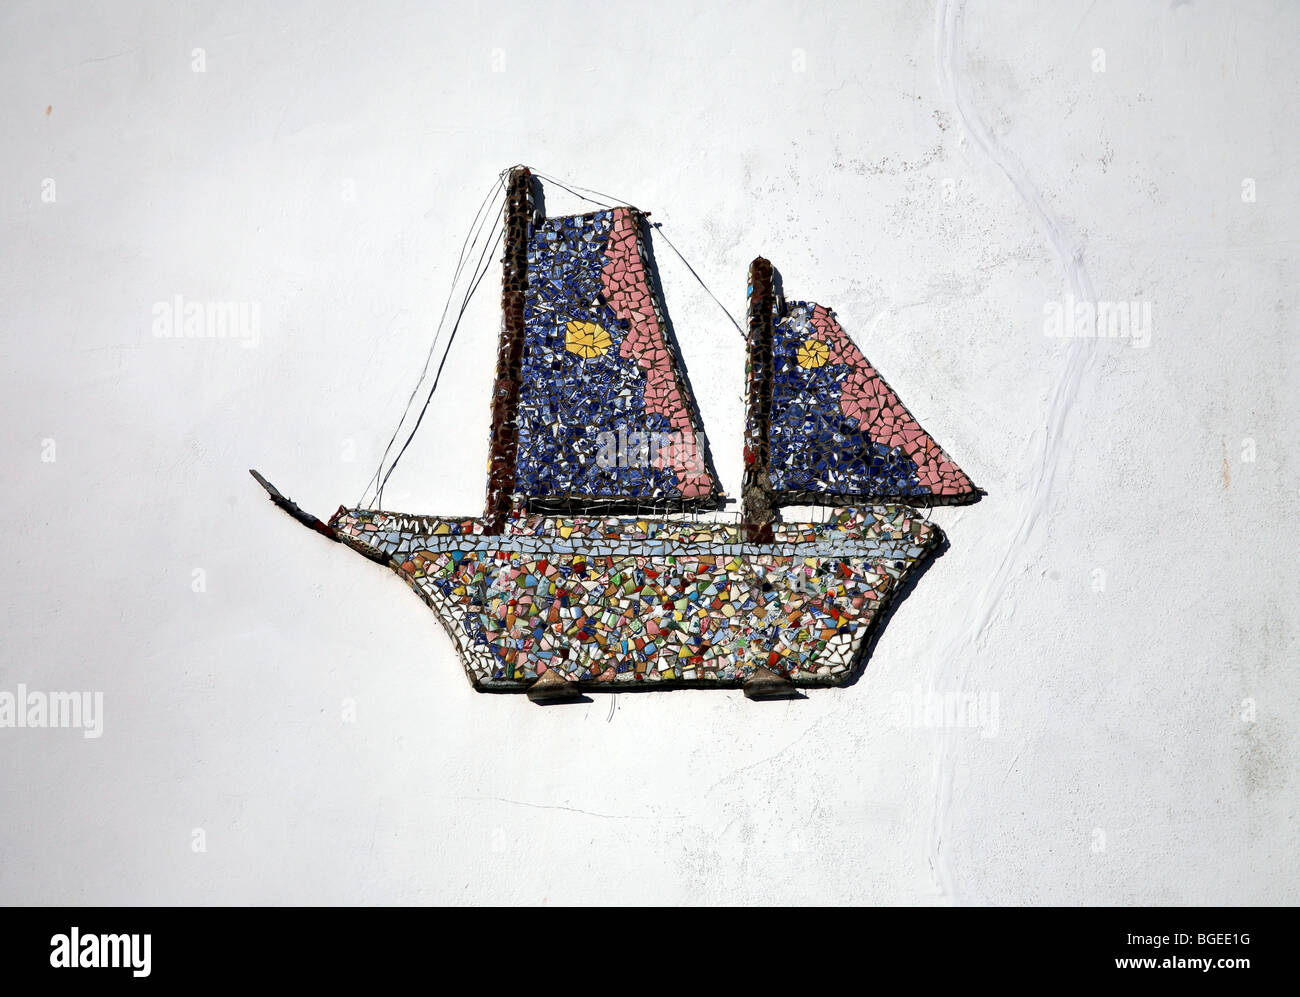 Boat on a wall in Minehead made of shells - Stock Image